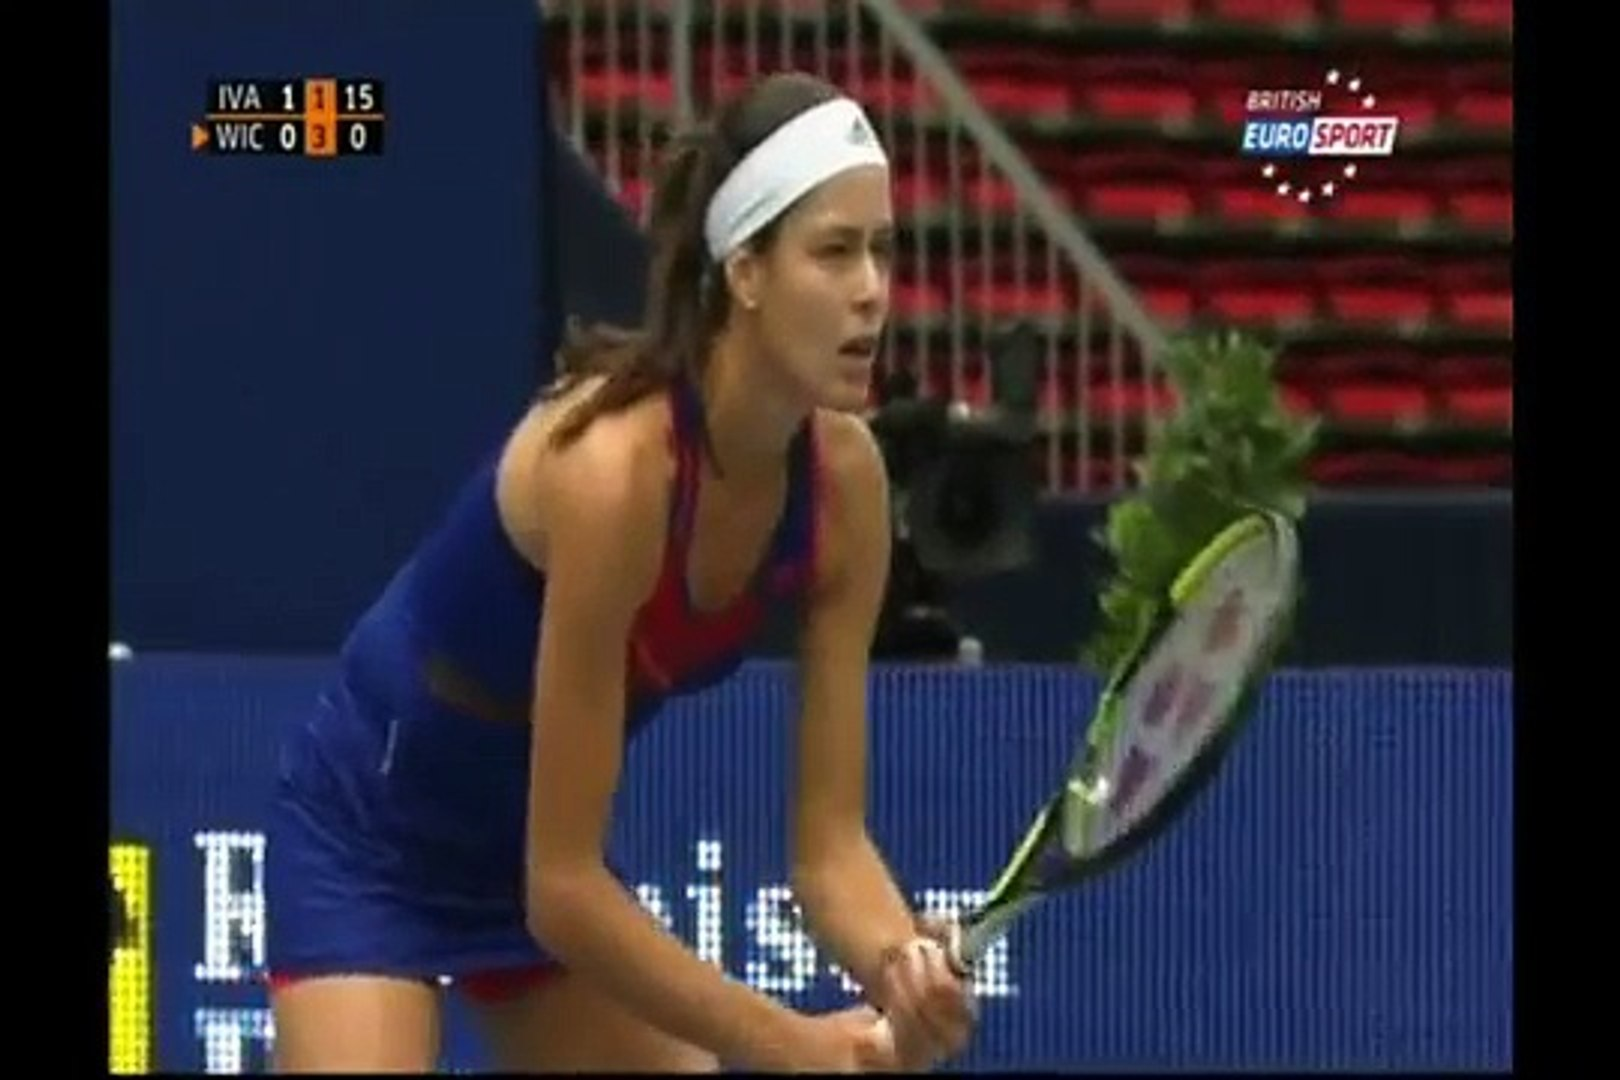 Ana Ivanovic Breasts wta tennis babes breasts bounce ivanovic wicmeyer - video